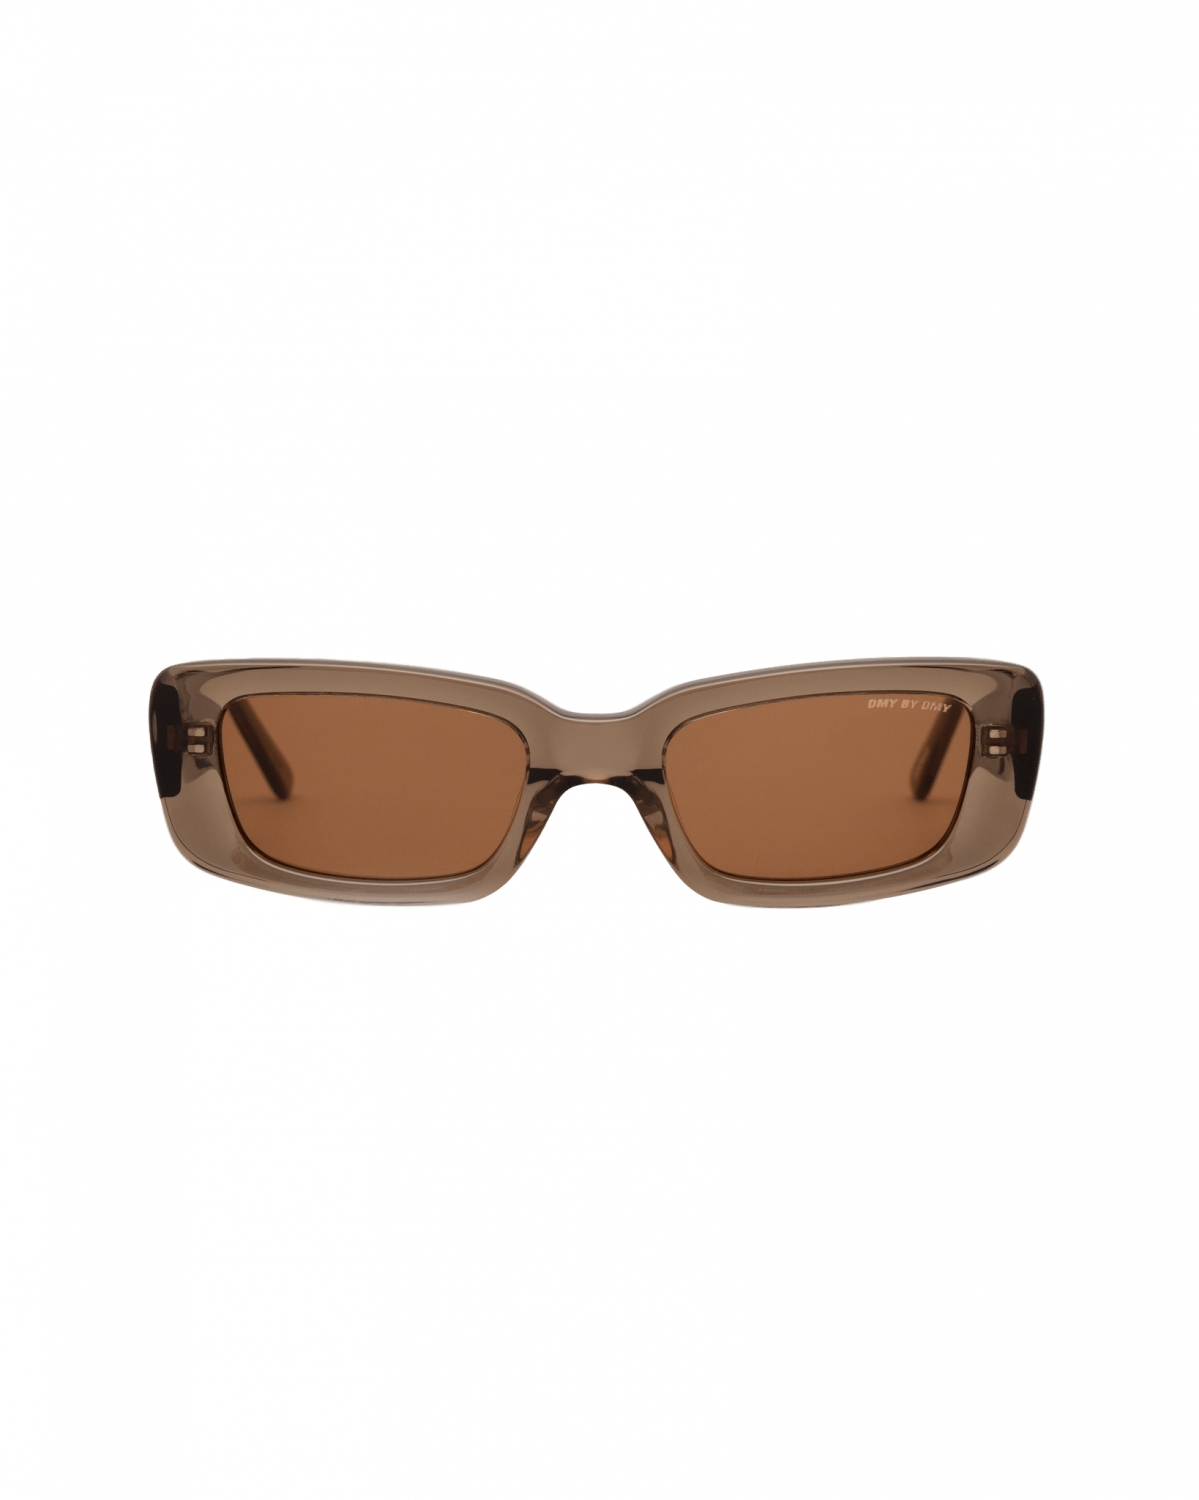 Preston (Transparent Olive) by Dmy by Dmy, available on dmybydmy.com for $185 Kendall Jenner Sunglasses Exact Product